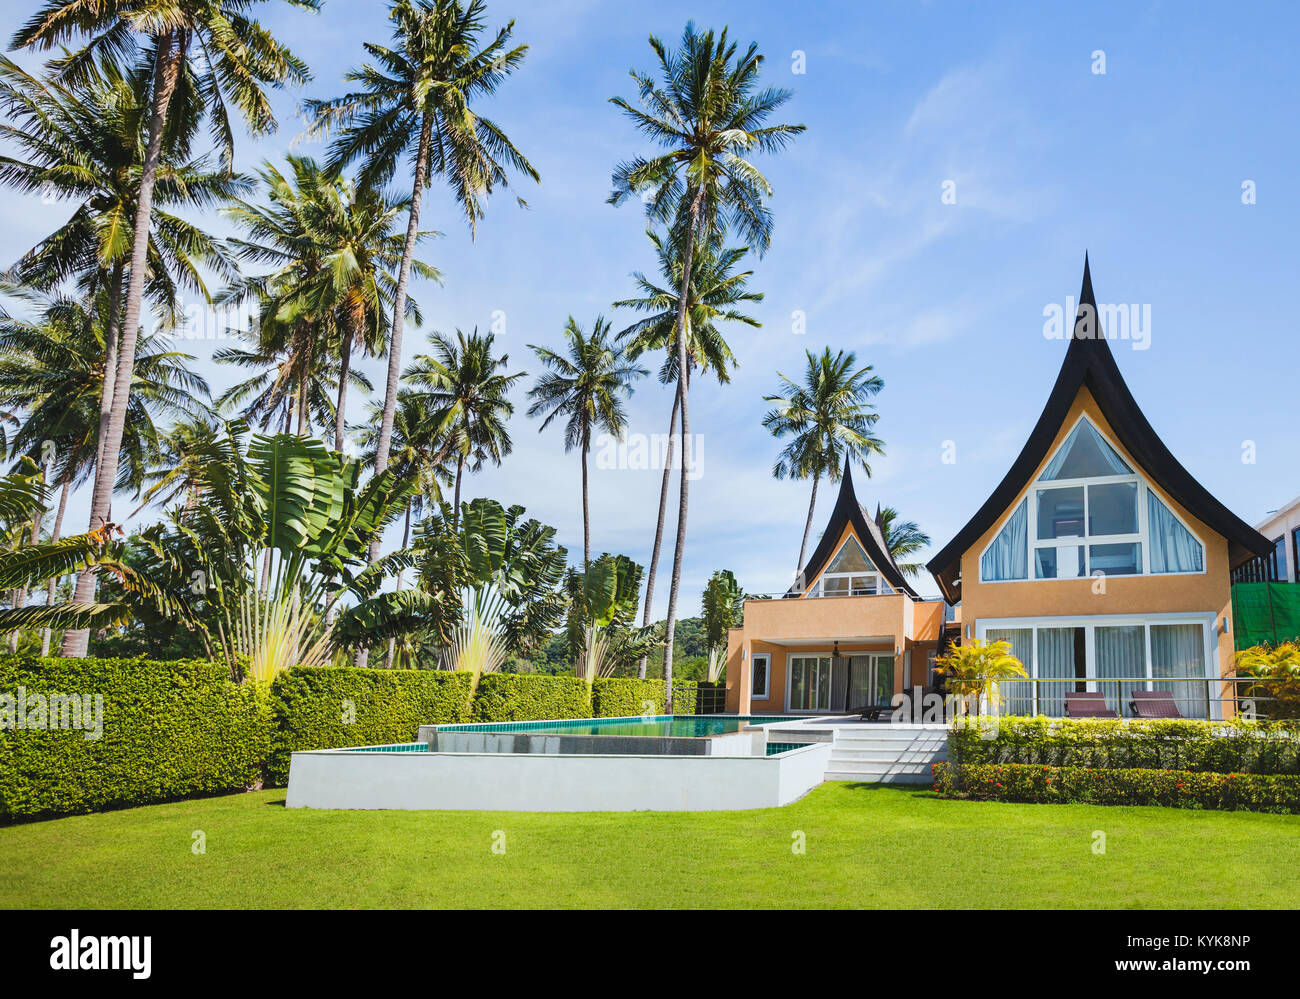 luxurious villa exterior, beautiful luxury vip house asian style with tropical swimming pool - Stock Image